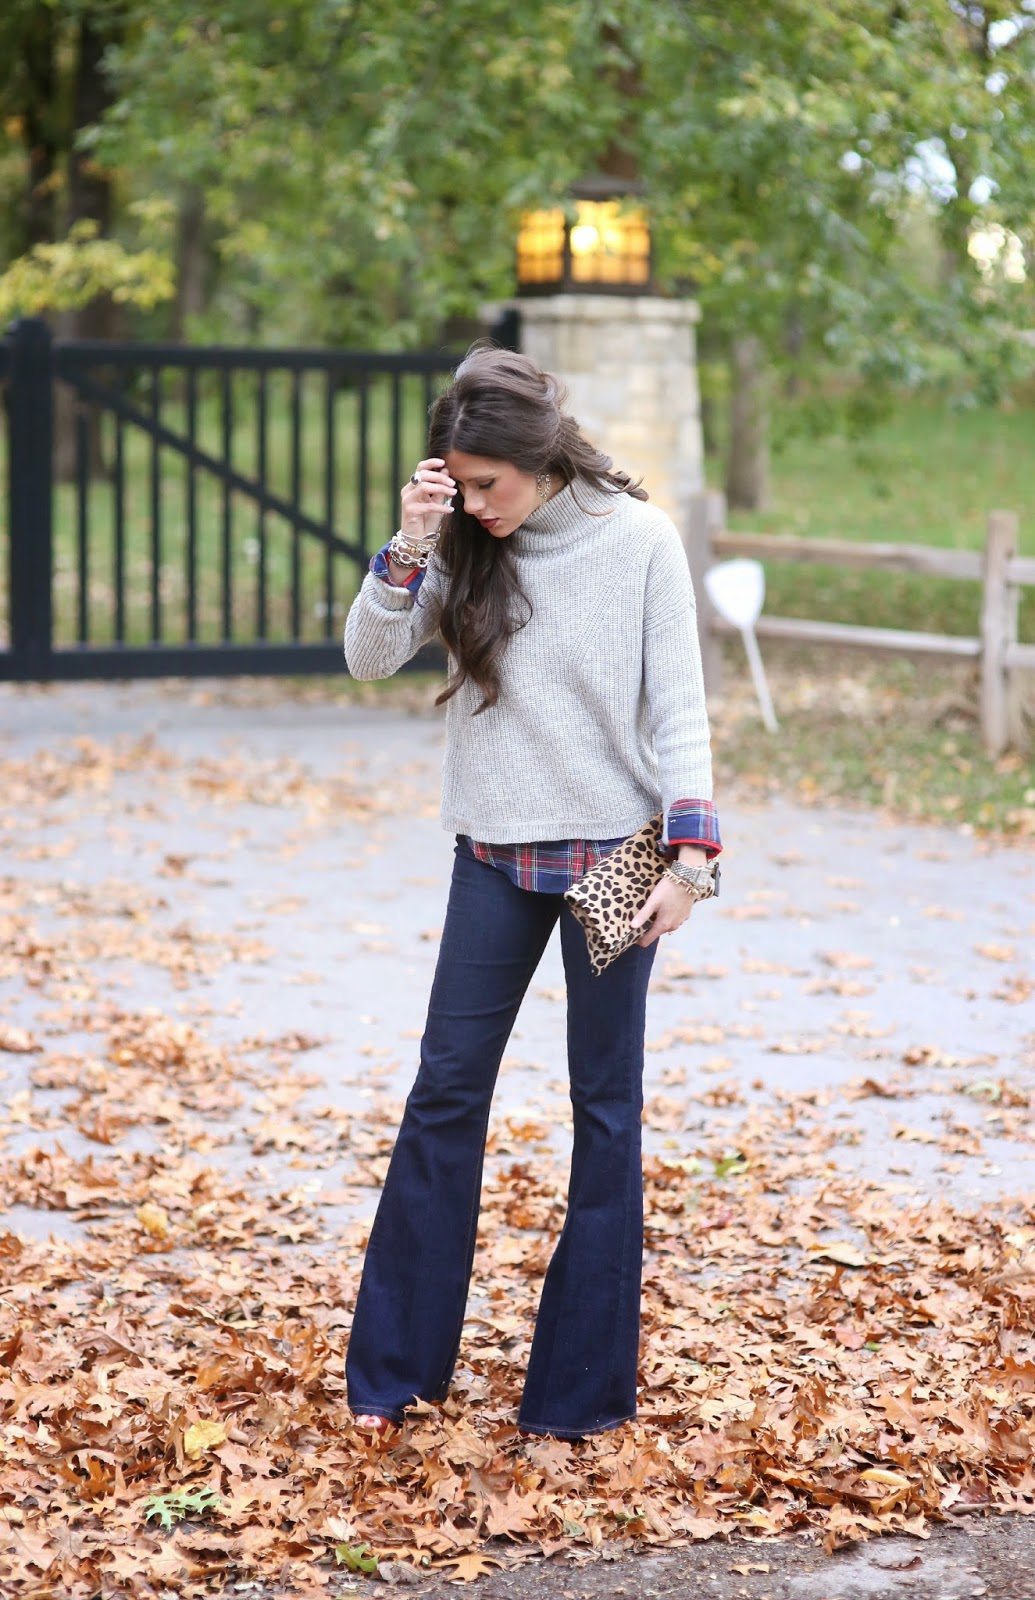 fall outfit idea pinterest 2015, fall outfit with flare jeans pinterest, plaid shirt with flair jeans and leopard clutch pinterst, fall ootd 2015, how to style flared denim, emily gemma, best flare denim 2015, plaid shirt under sweater